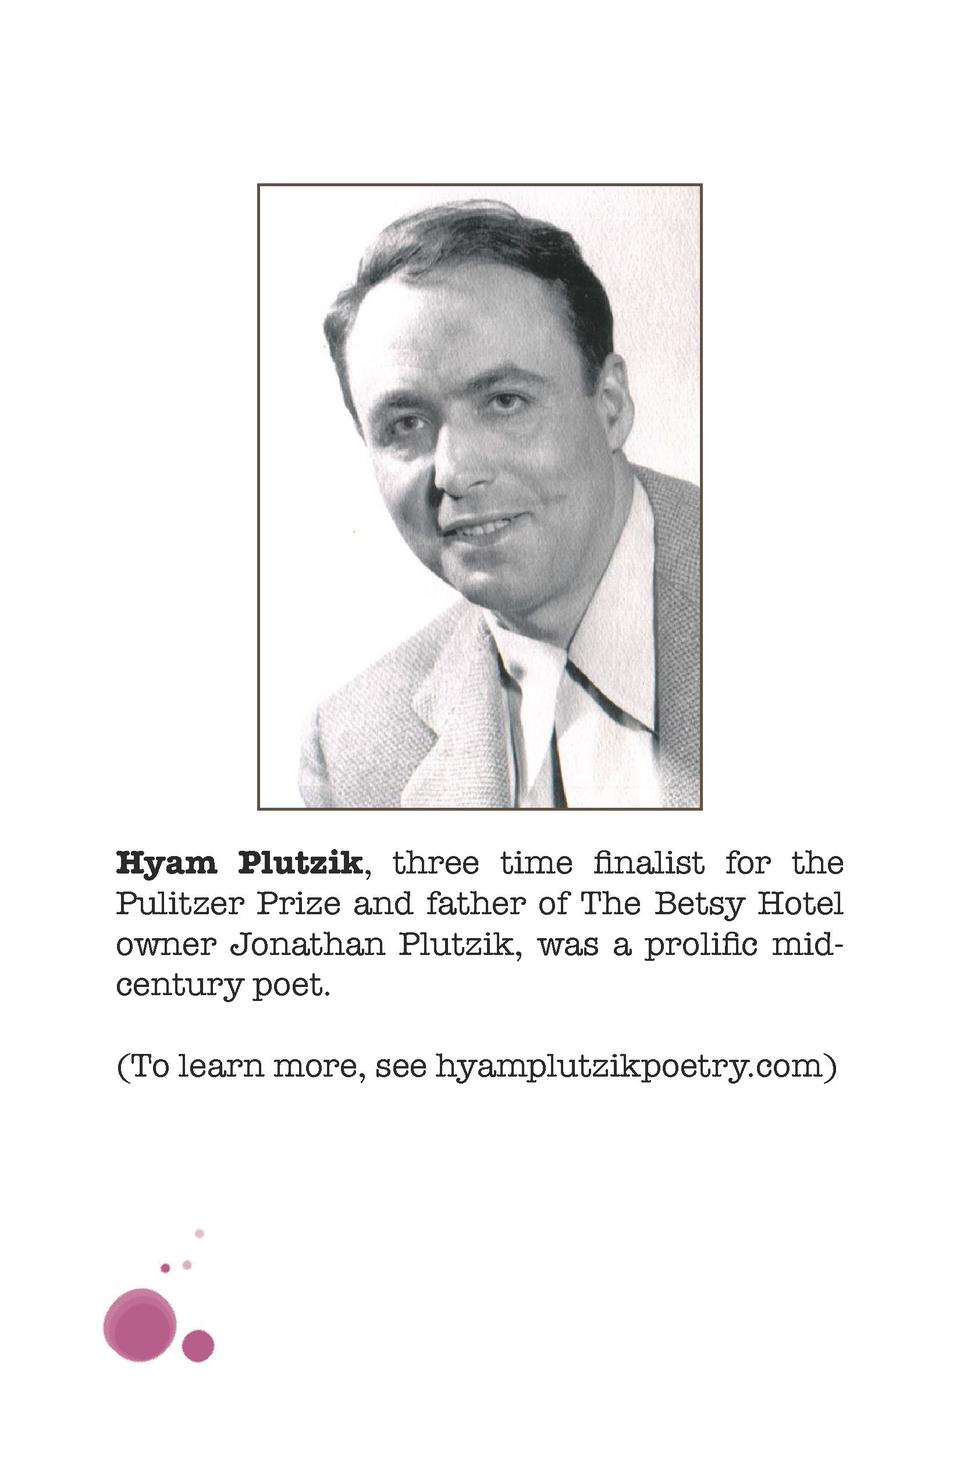 Hyam Plutzik, three time finalist for the Pulitzer Prize and father of The Betsy Hotel owner Jonathan Plutzik, was a proli...